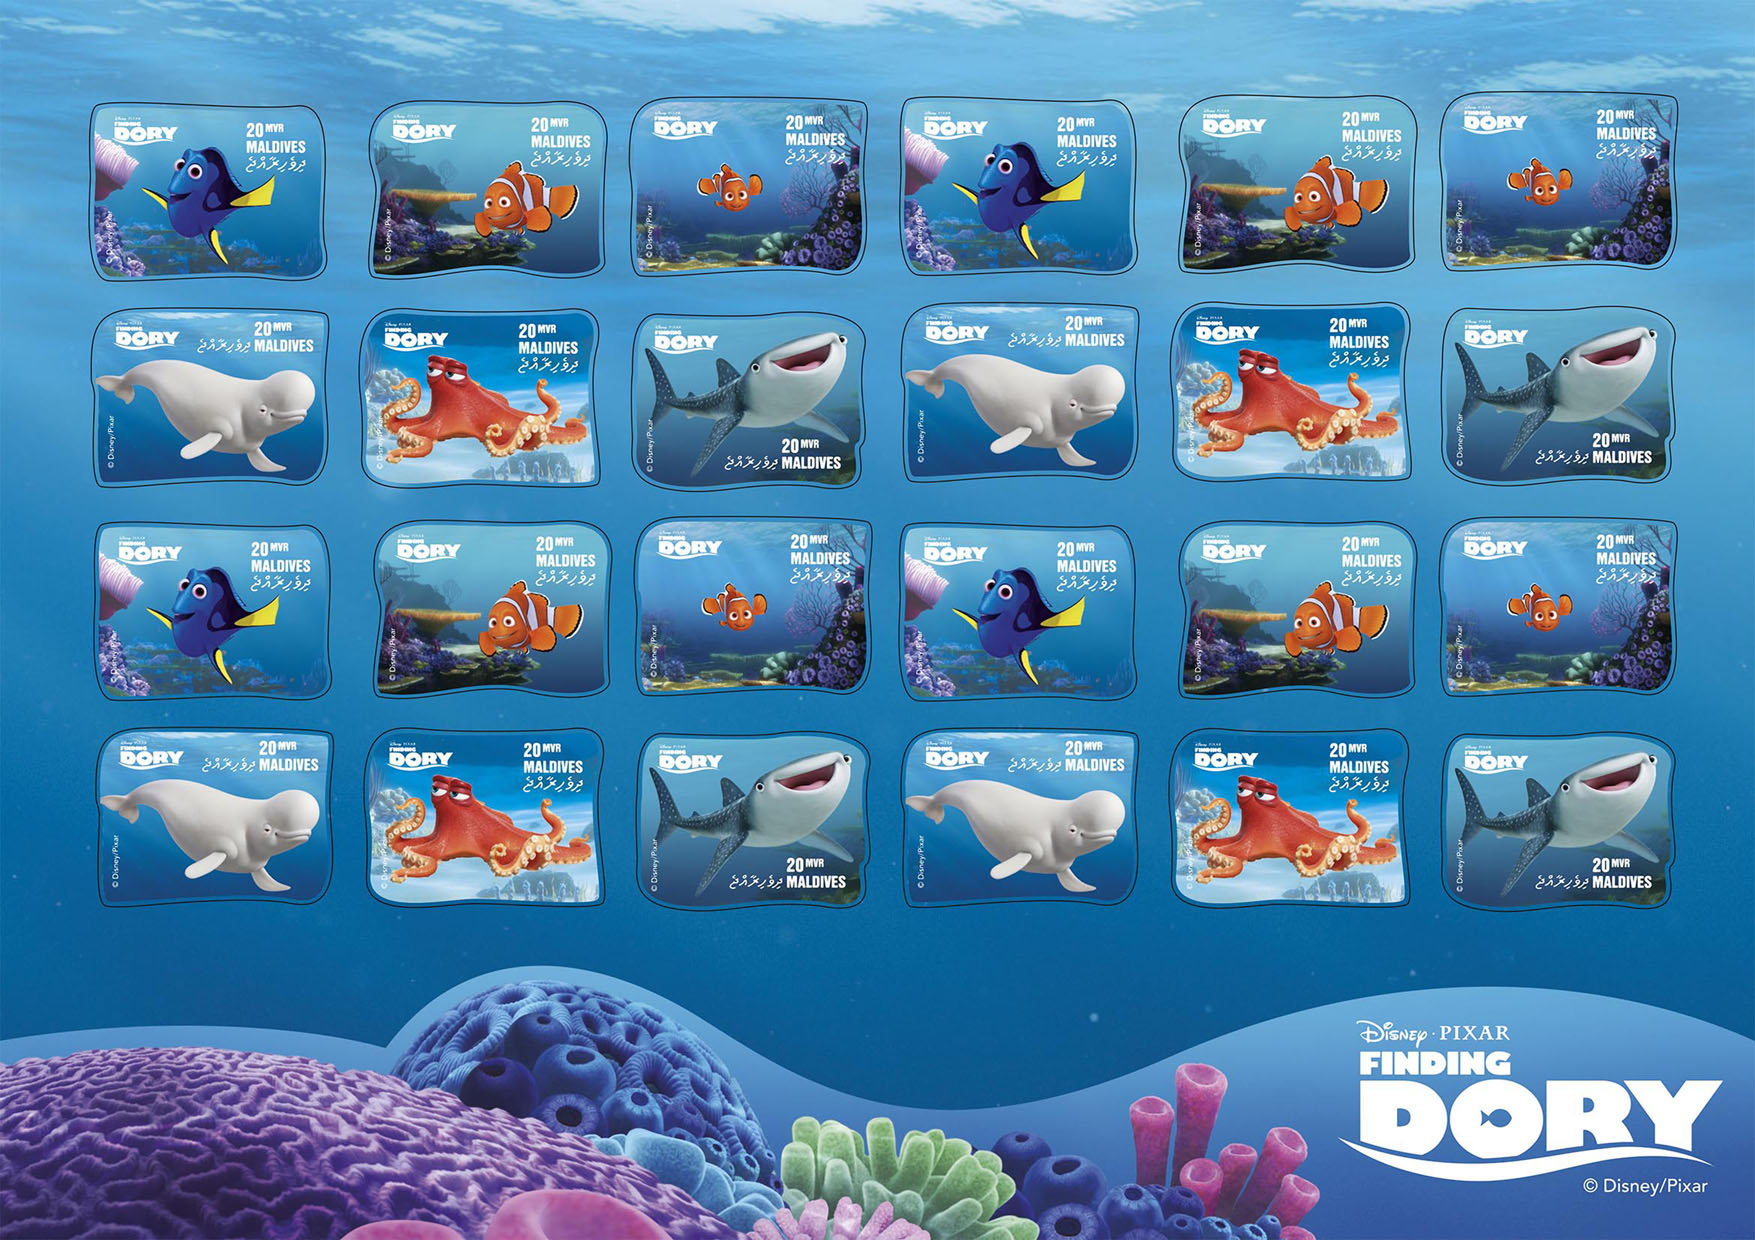 Finding Dory - Issue of Maldives postage stamps